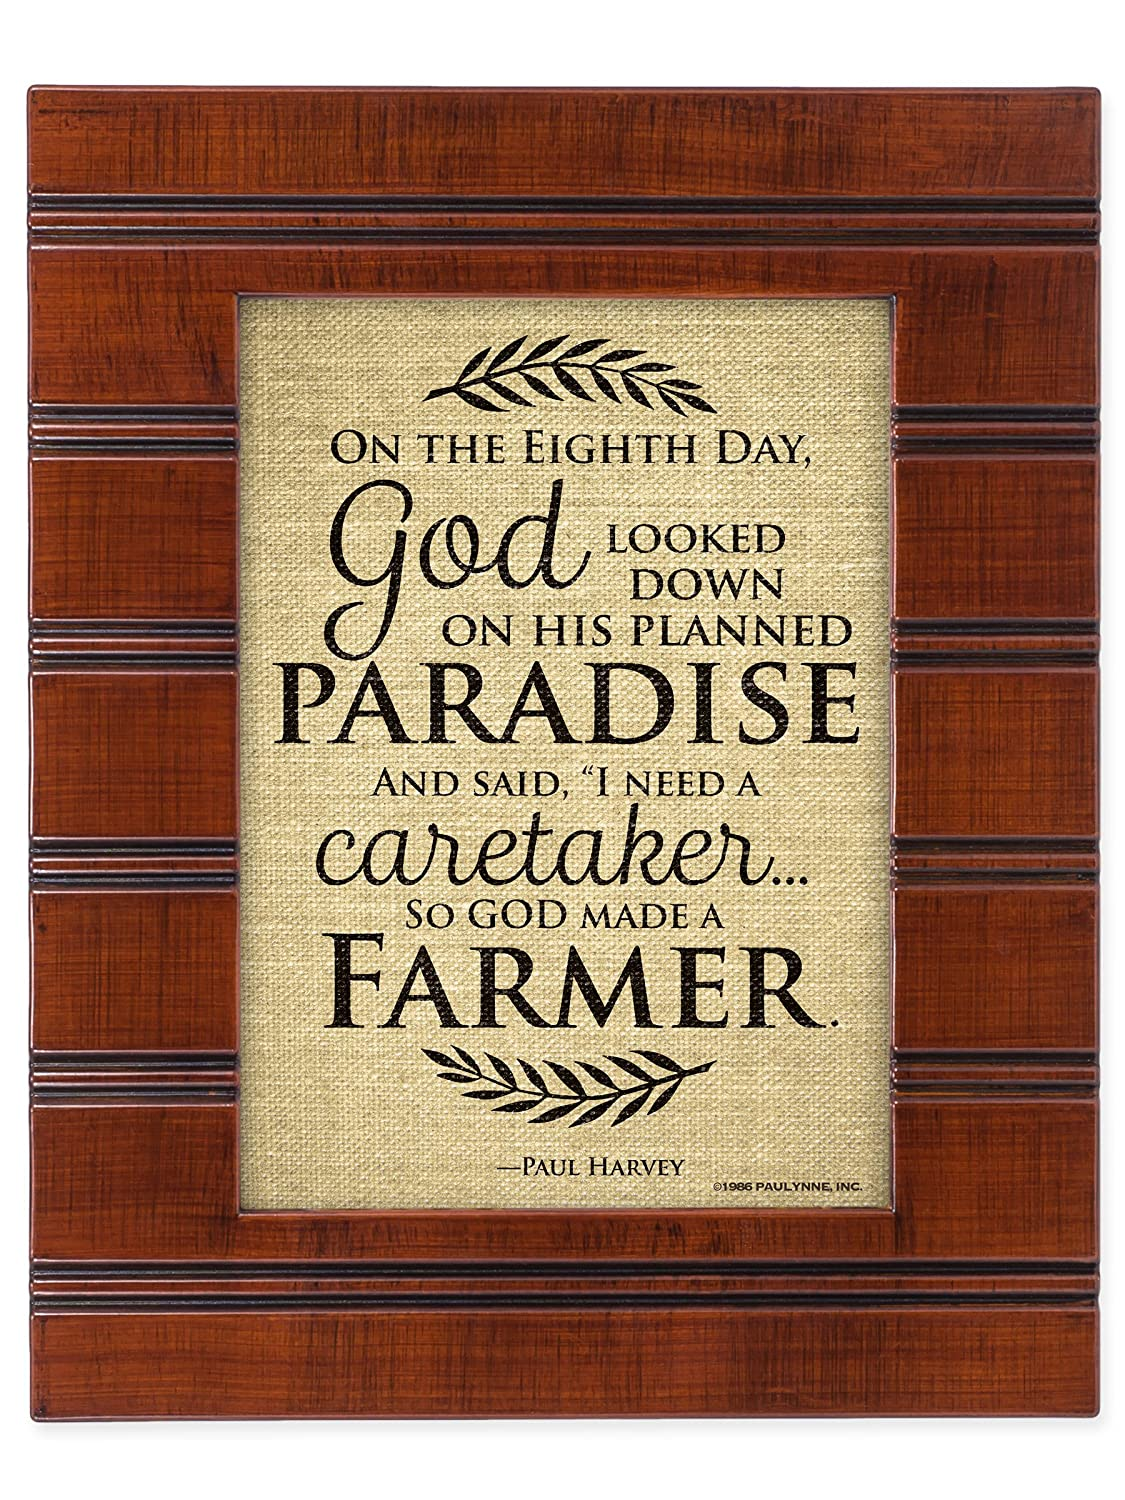 Amazon.com: So God Made a Farmer on the Eigth Day Wood Finish 8 x 10 ...